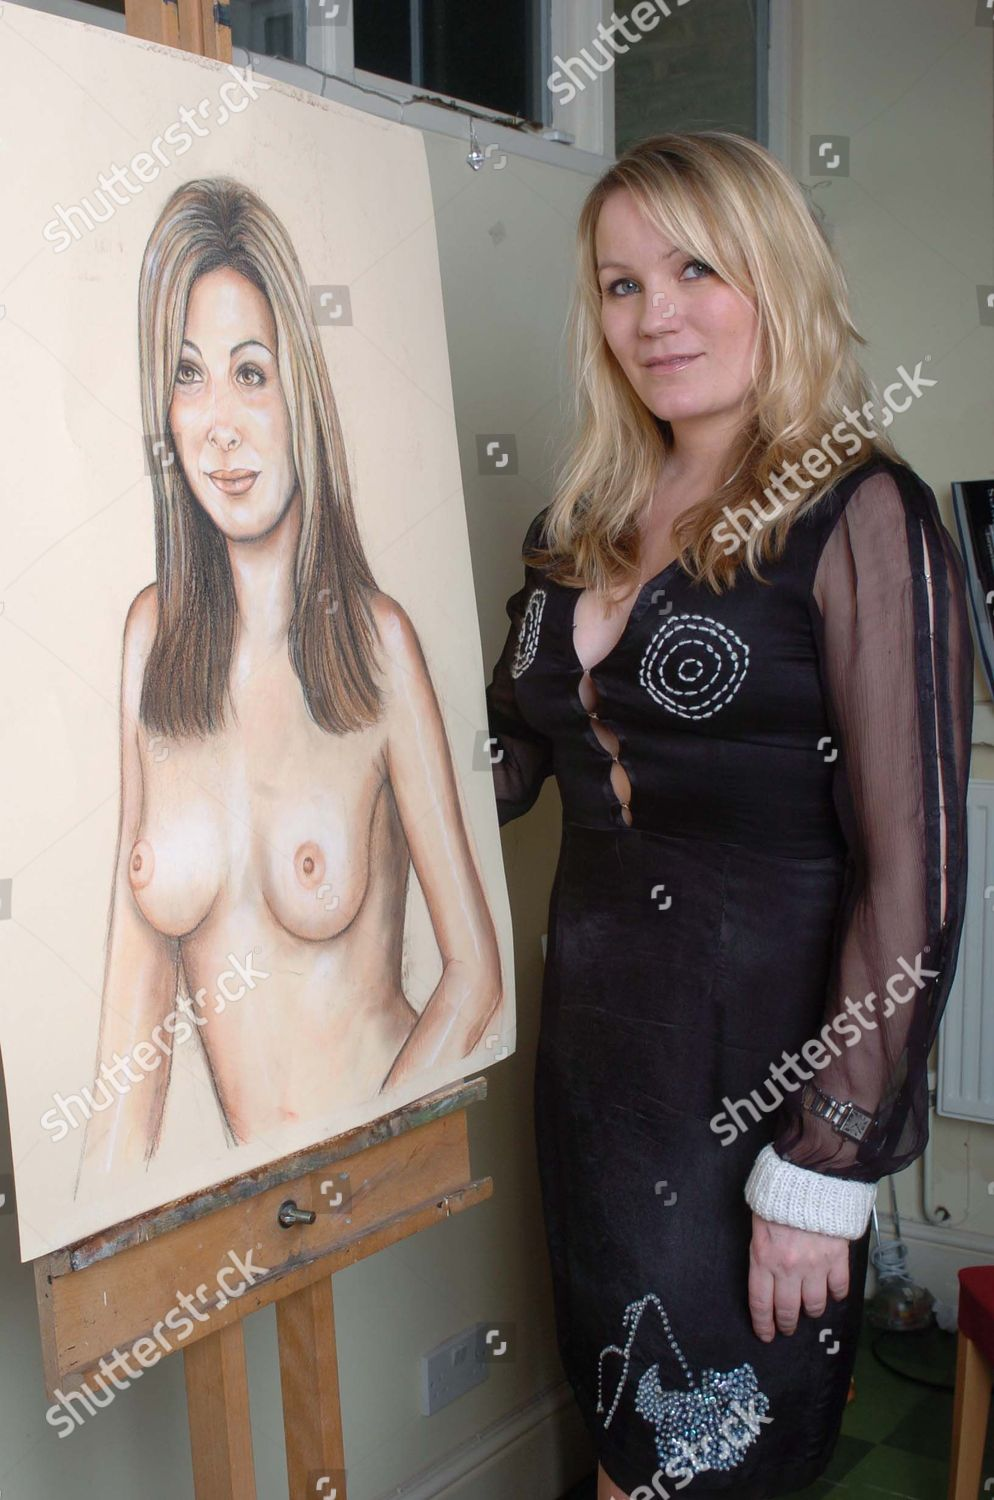 Artist Georgea Blakey With Her Portrait Of Tv Presenter Catherine Mcqueen.  An Increasing Number Of